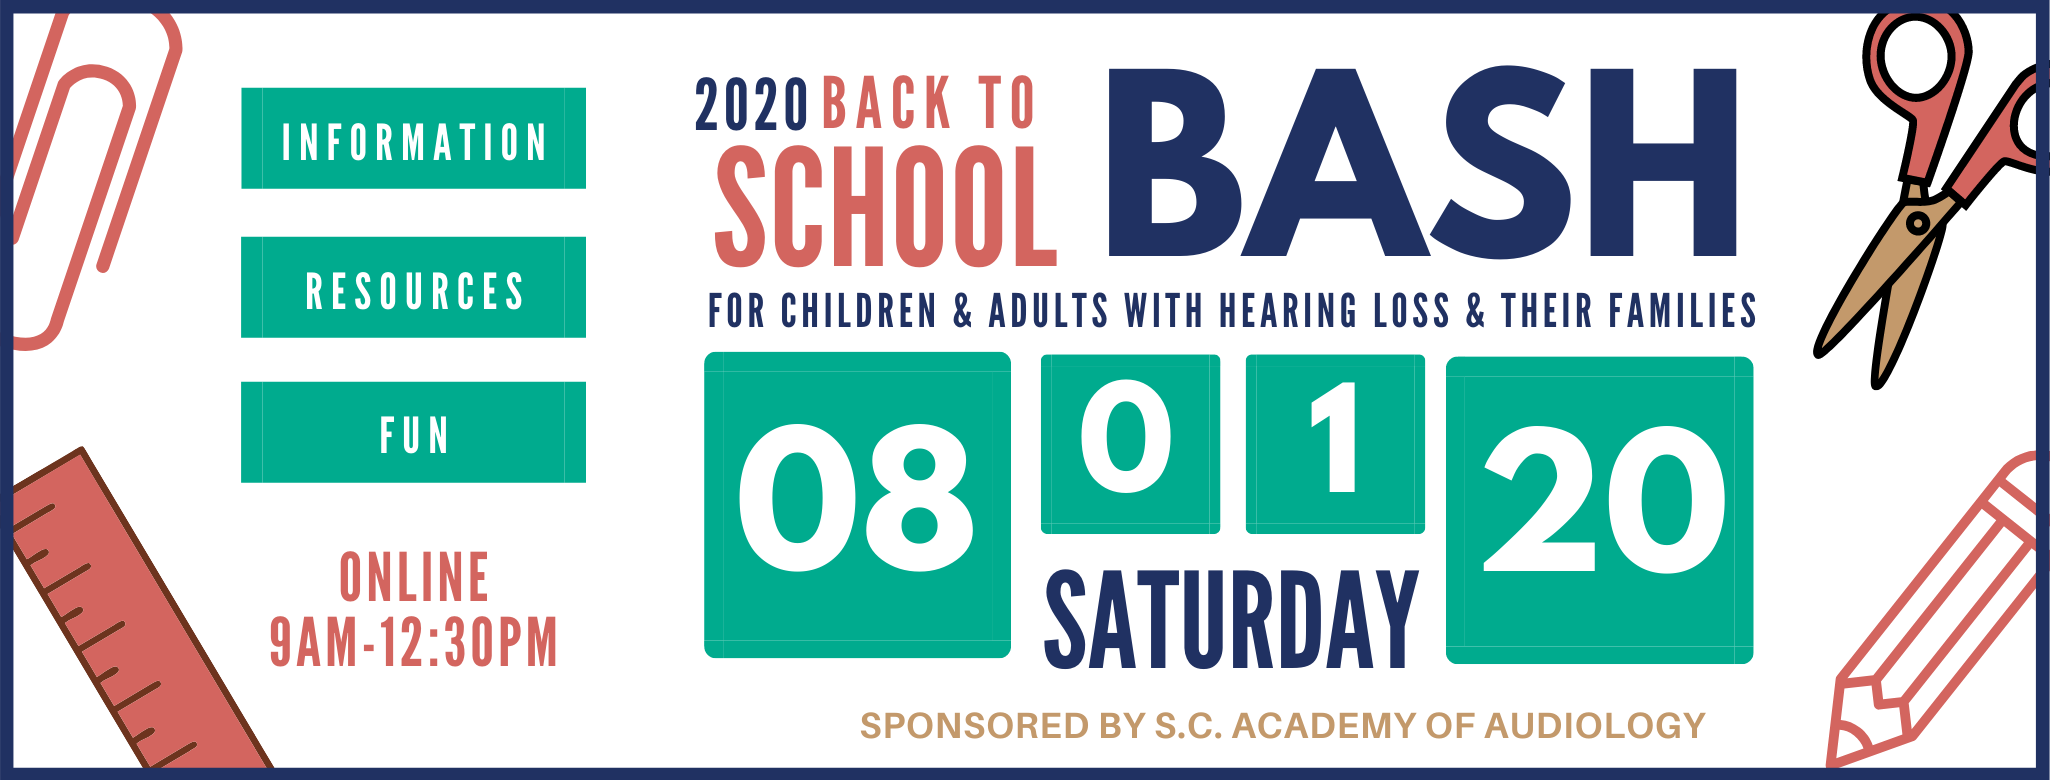 2020 Back to School Bash | Aug. 1, 2020 | Online | Free